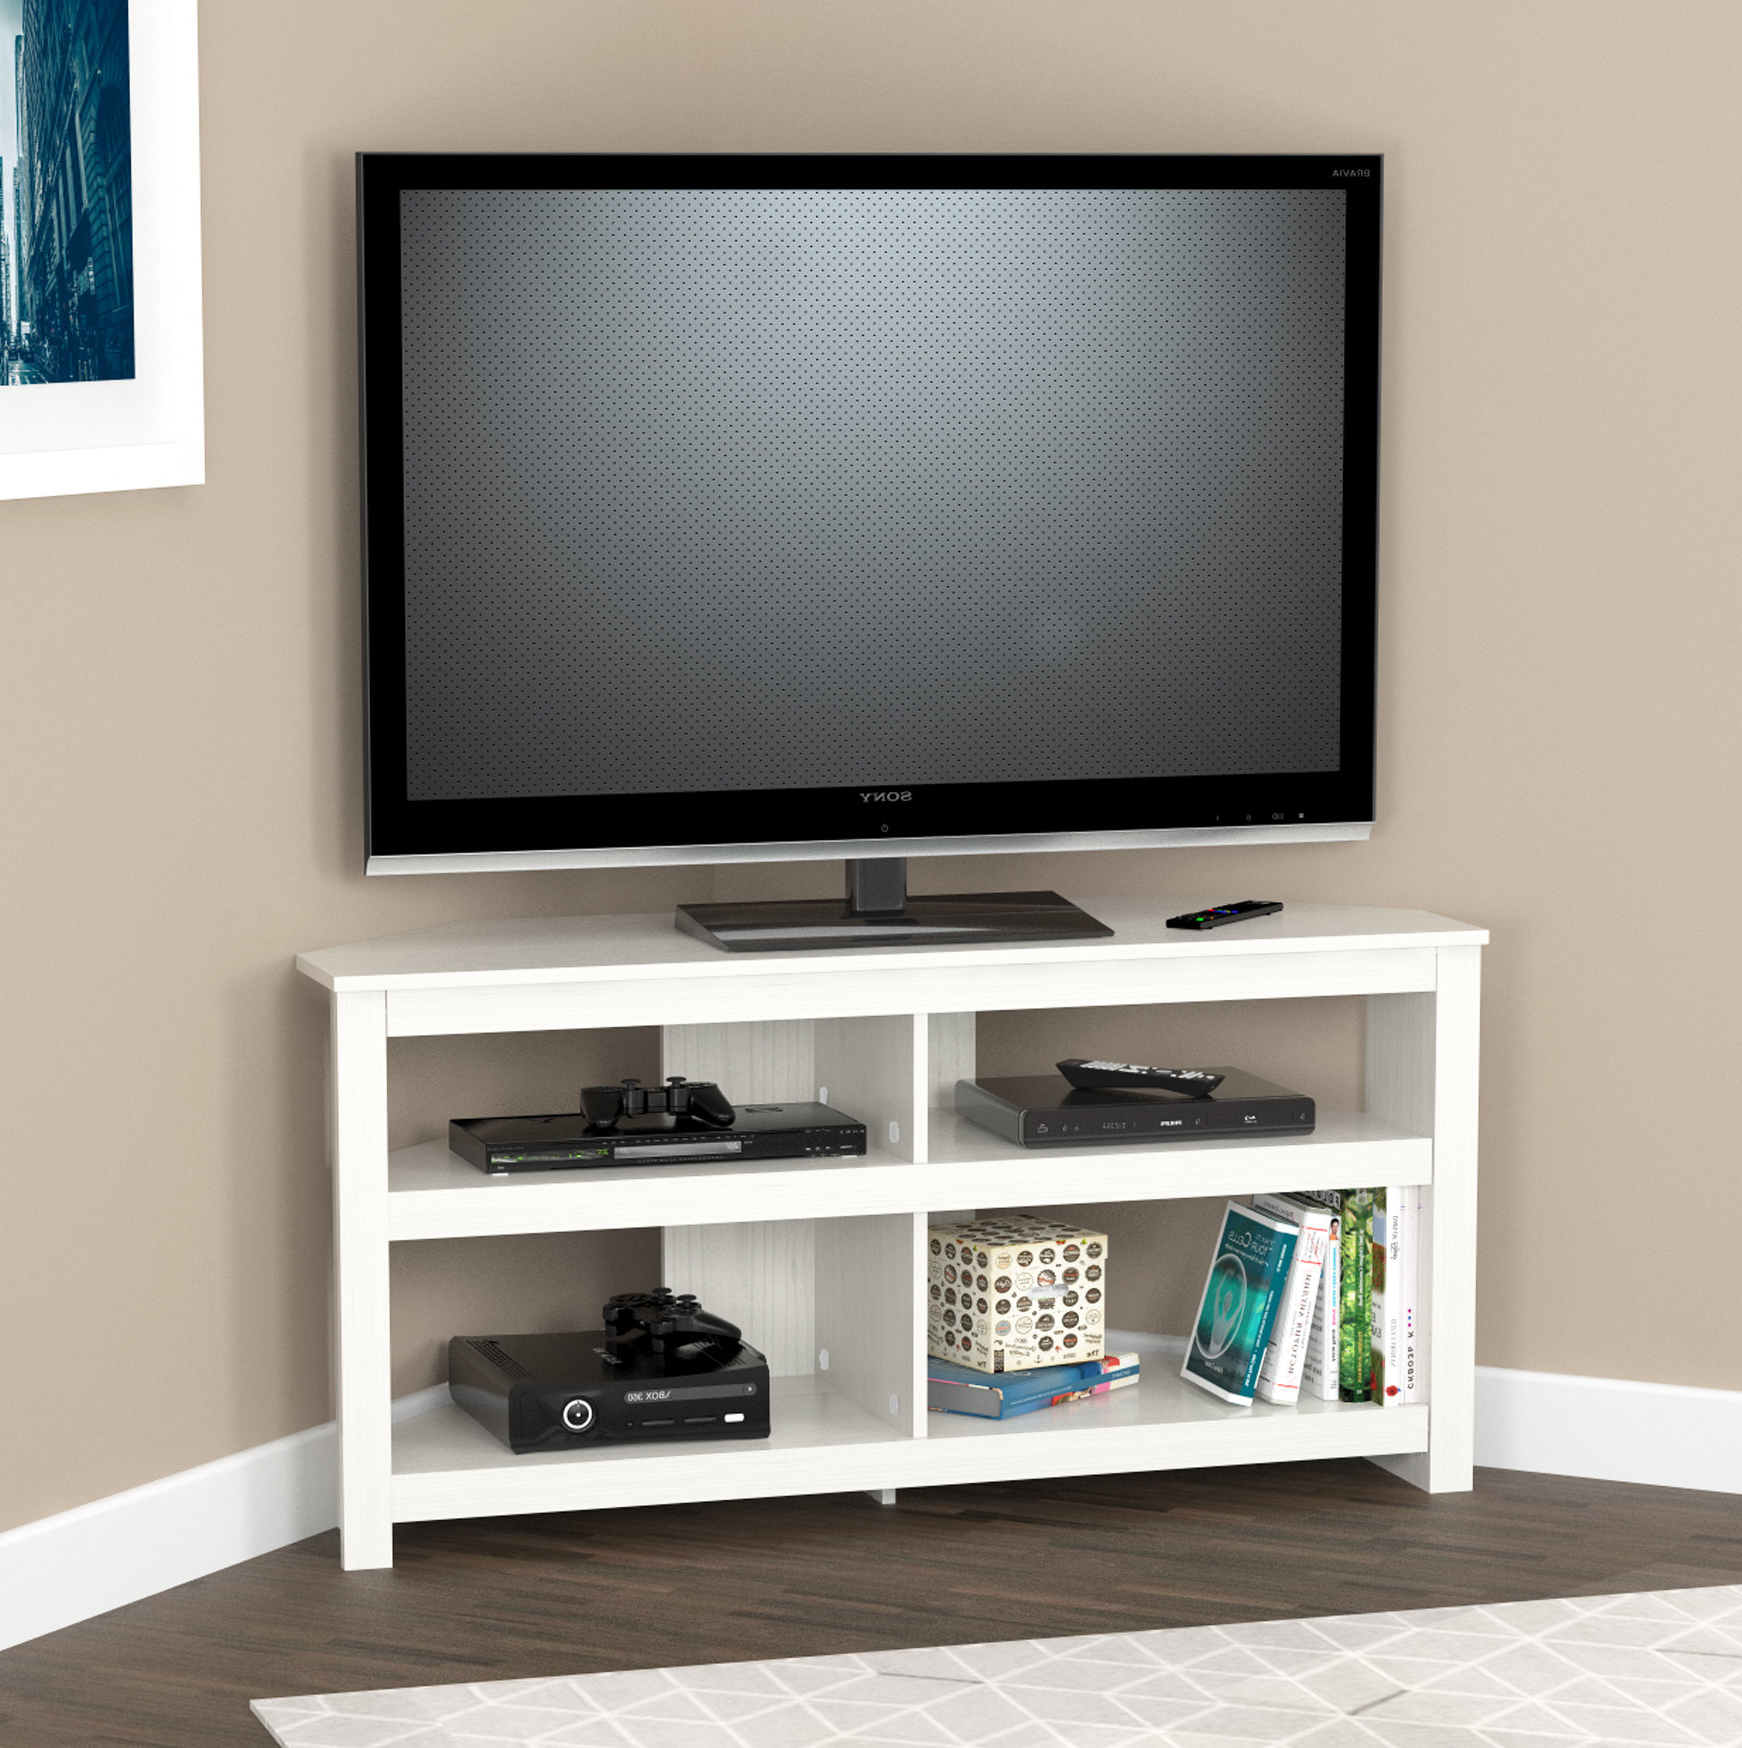 2018 Black Corner Tv Stands For Tvs Up To 60 Regarding Corner Tv Stands You'll Love (Gallery 2 of 20)